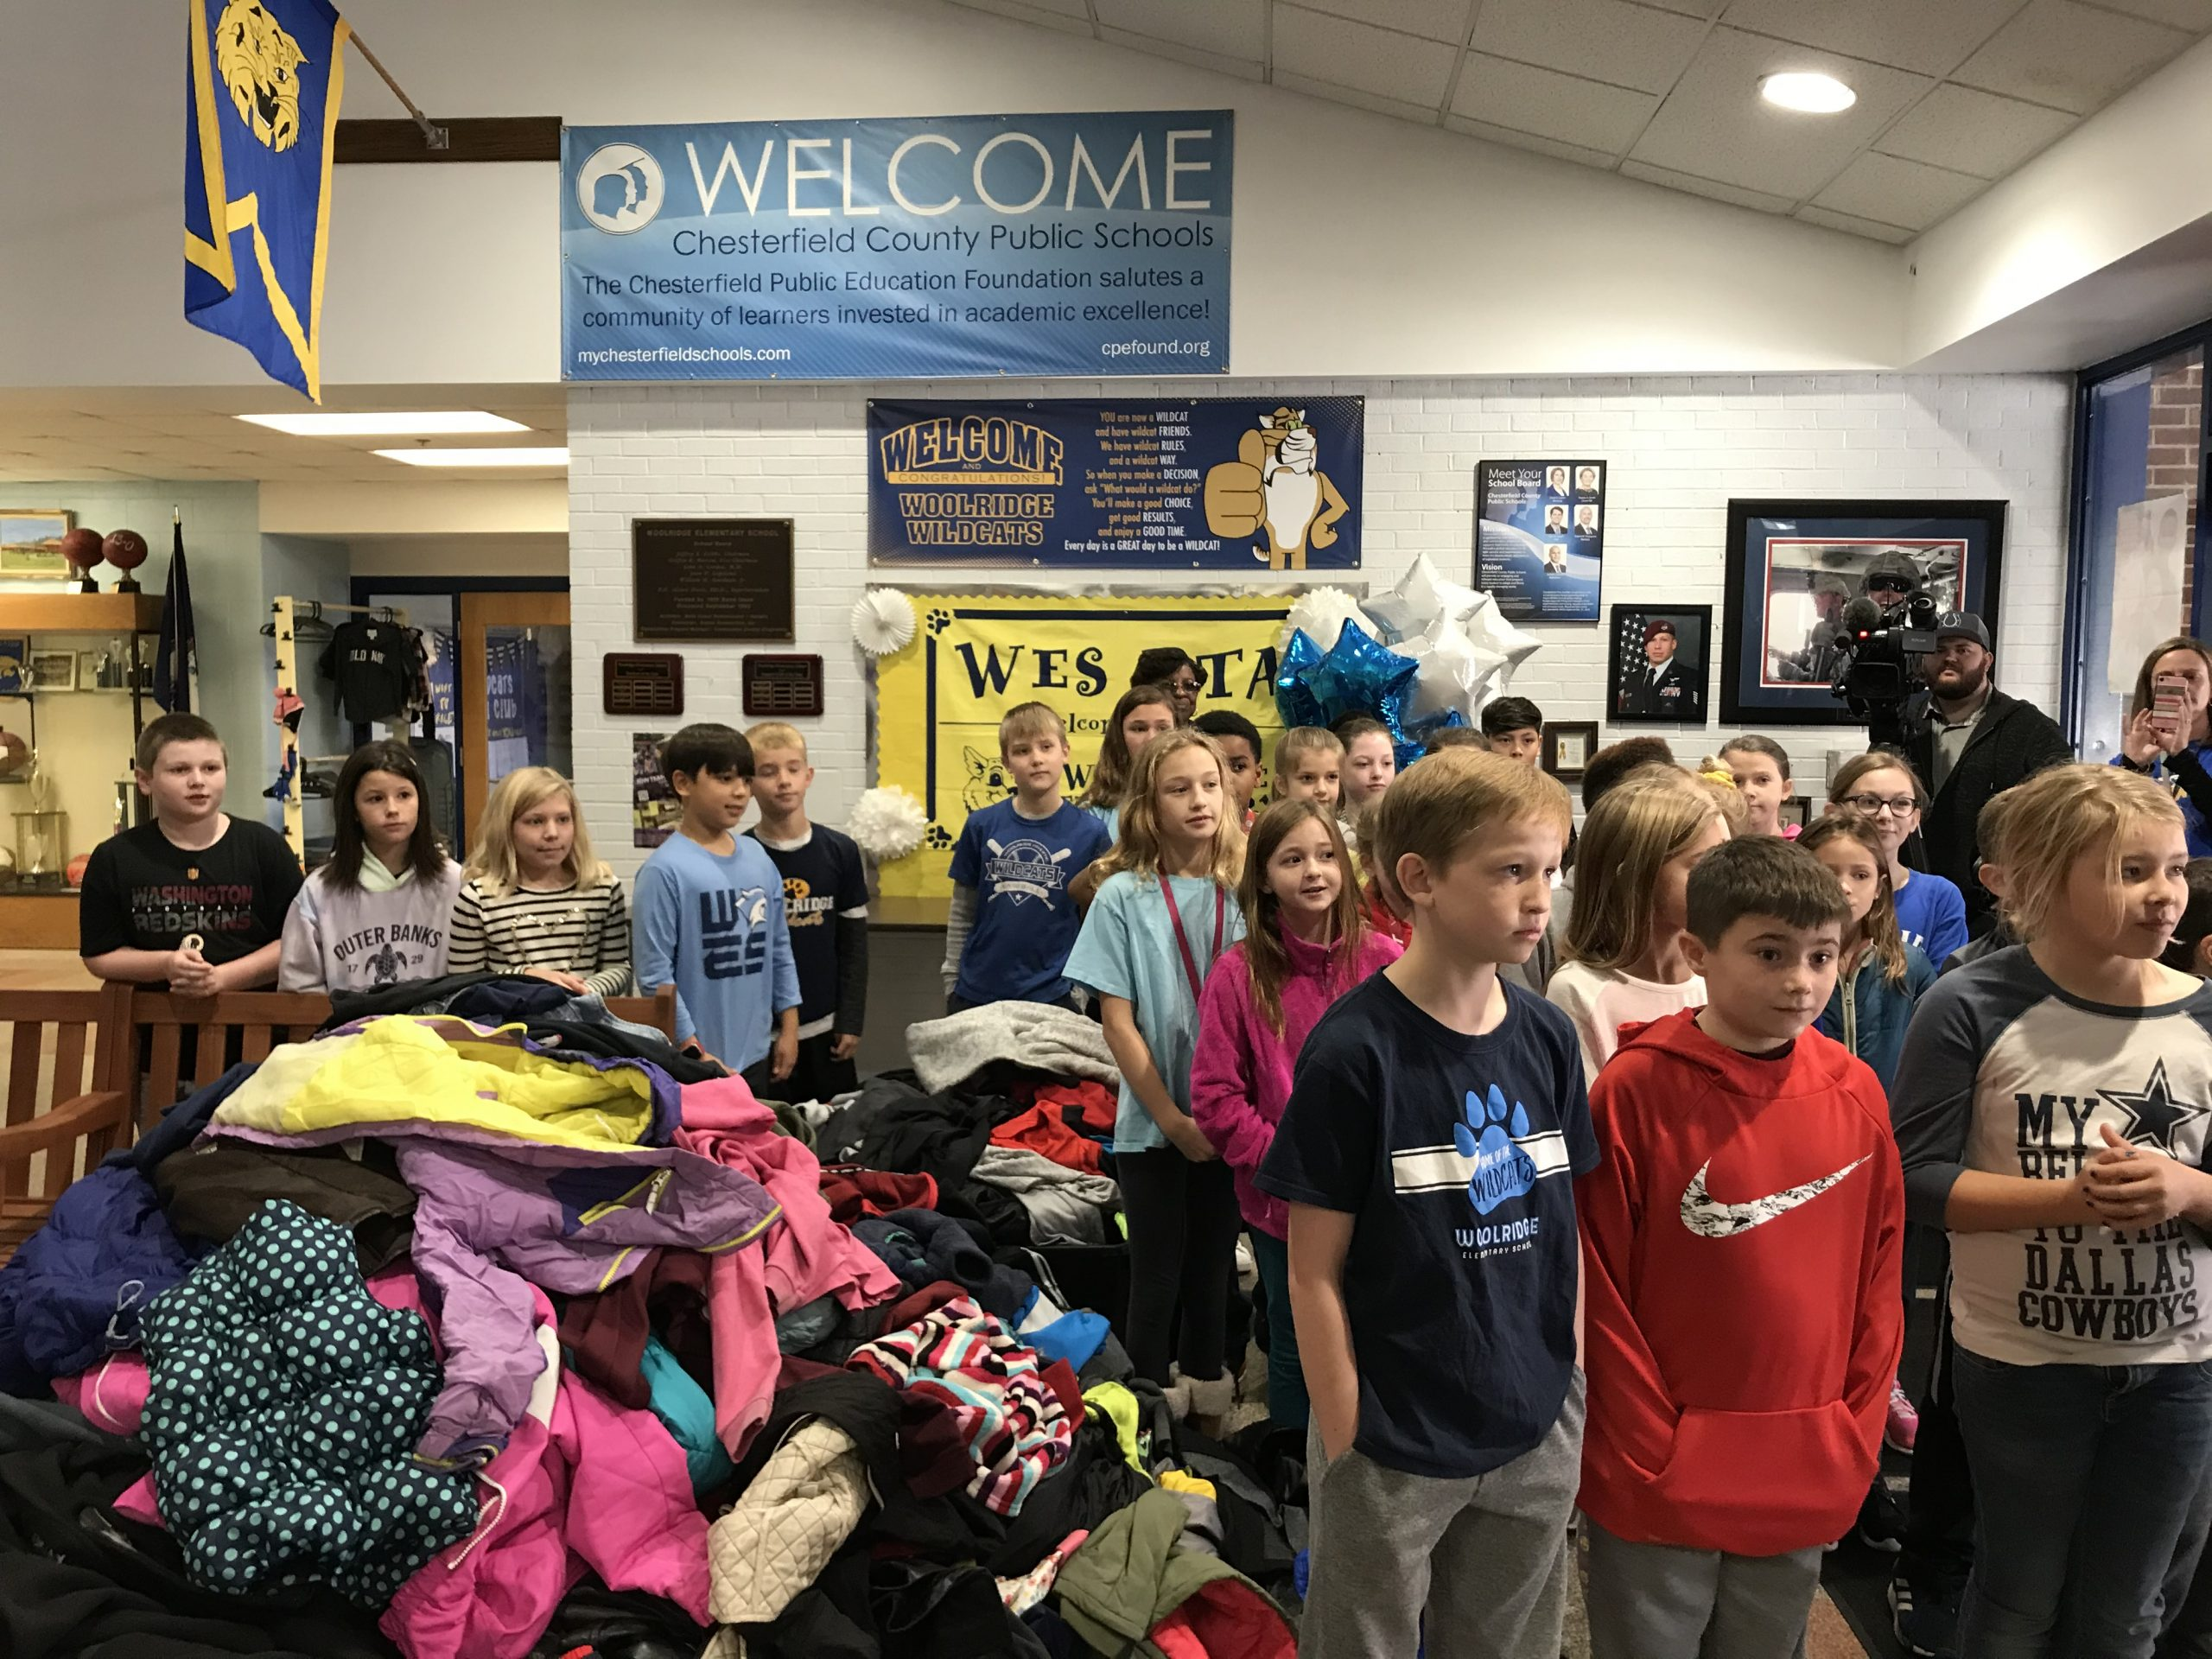 Students in room filled with coats they are donating.